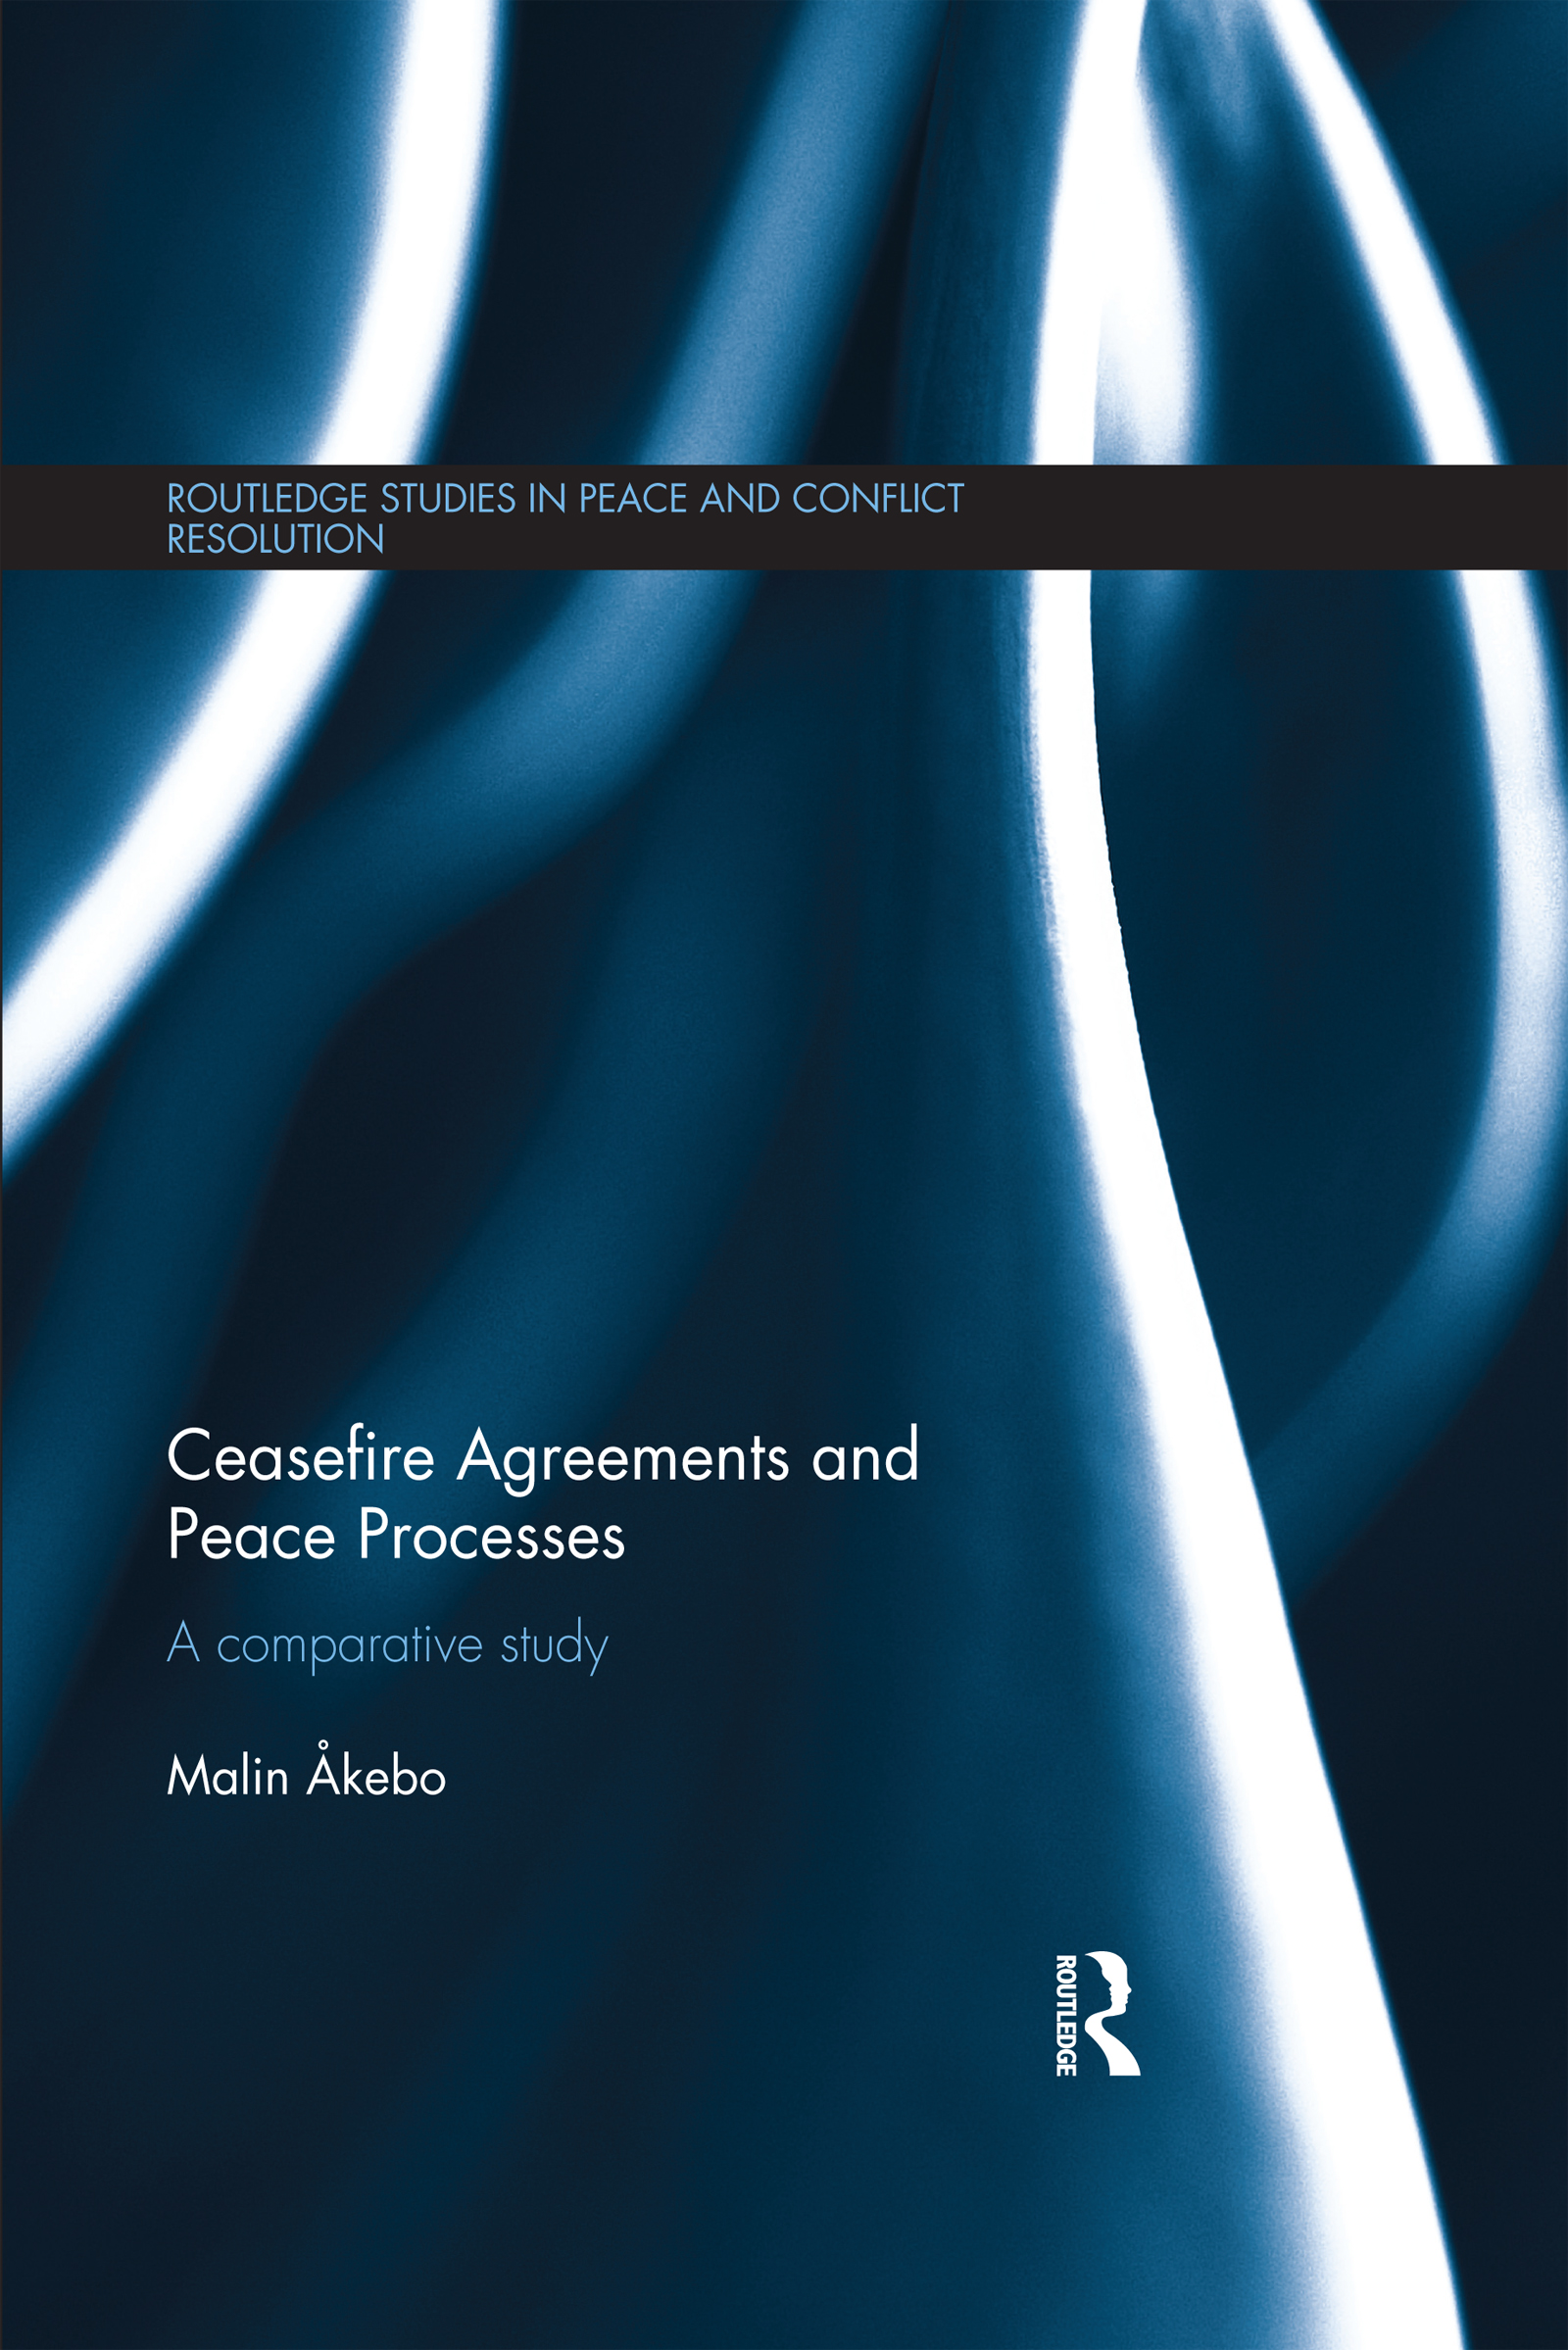 Ceasefire Agreements and Peace Processes